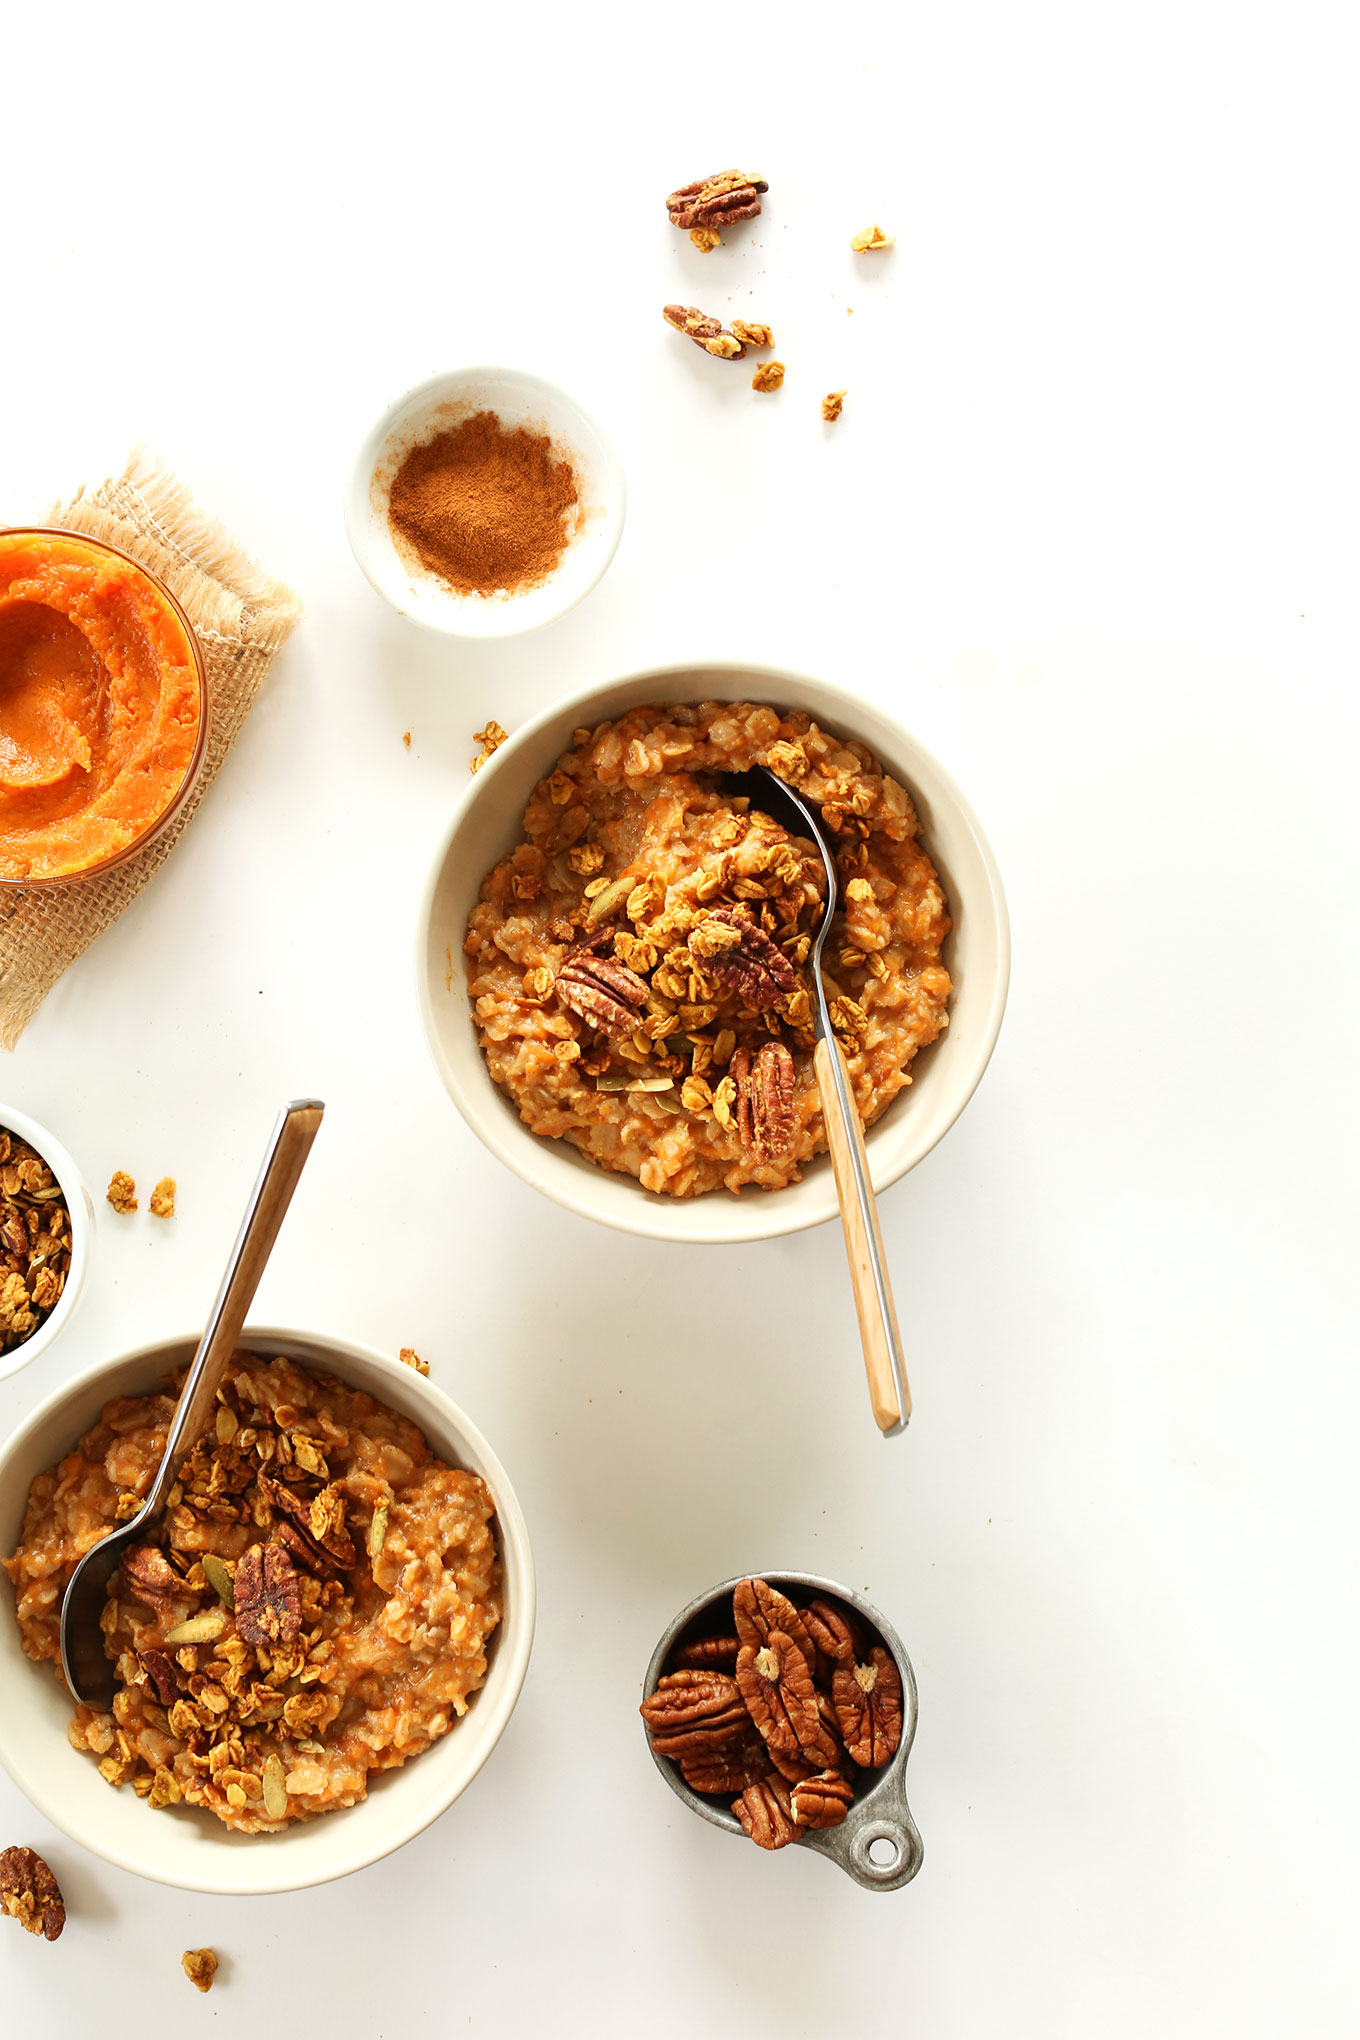 HEALTHY-Sweet-Potato-Pie-Oats!-Perfectly-sweet,-spiced-and-satisfying #vegan #glutenfree #sweetpotato #minimalistbaker